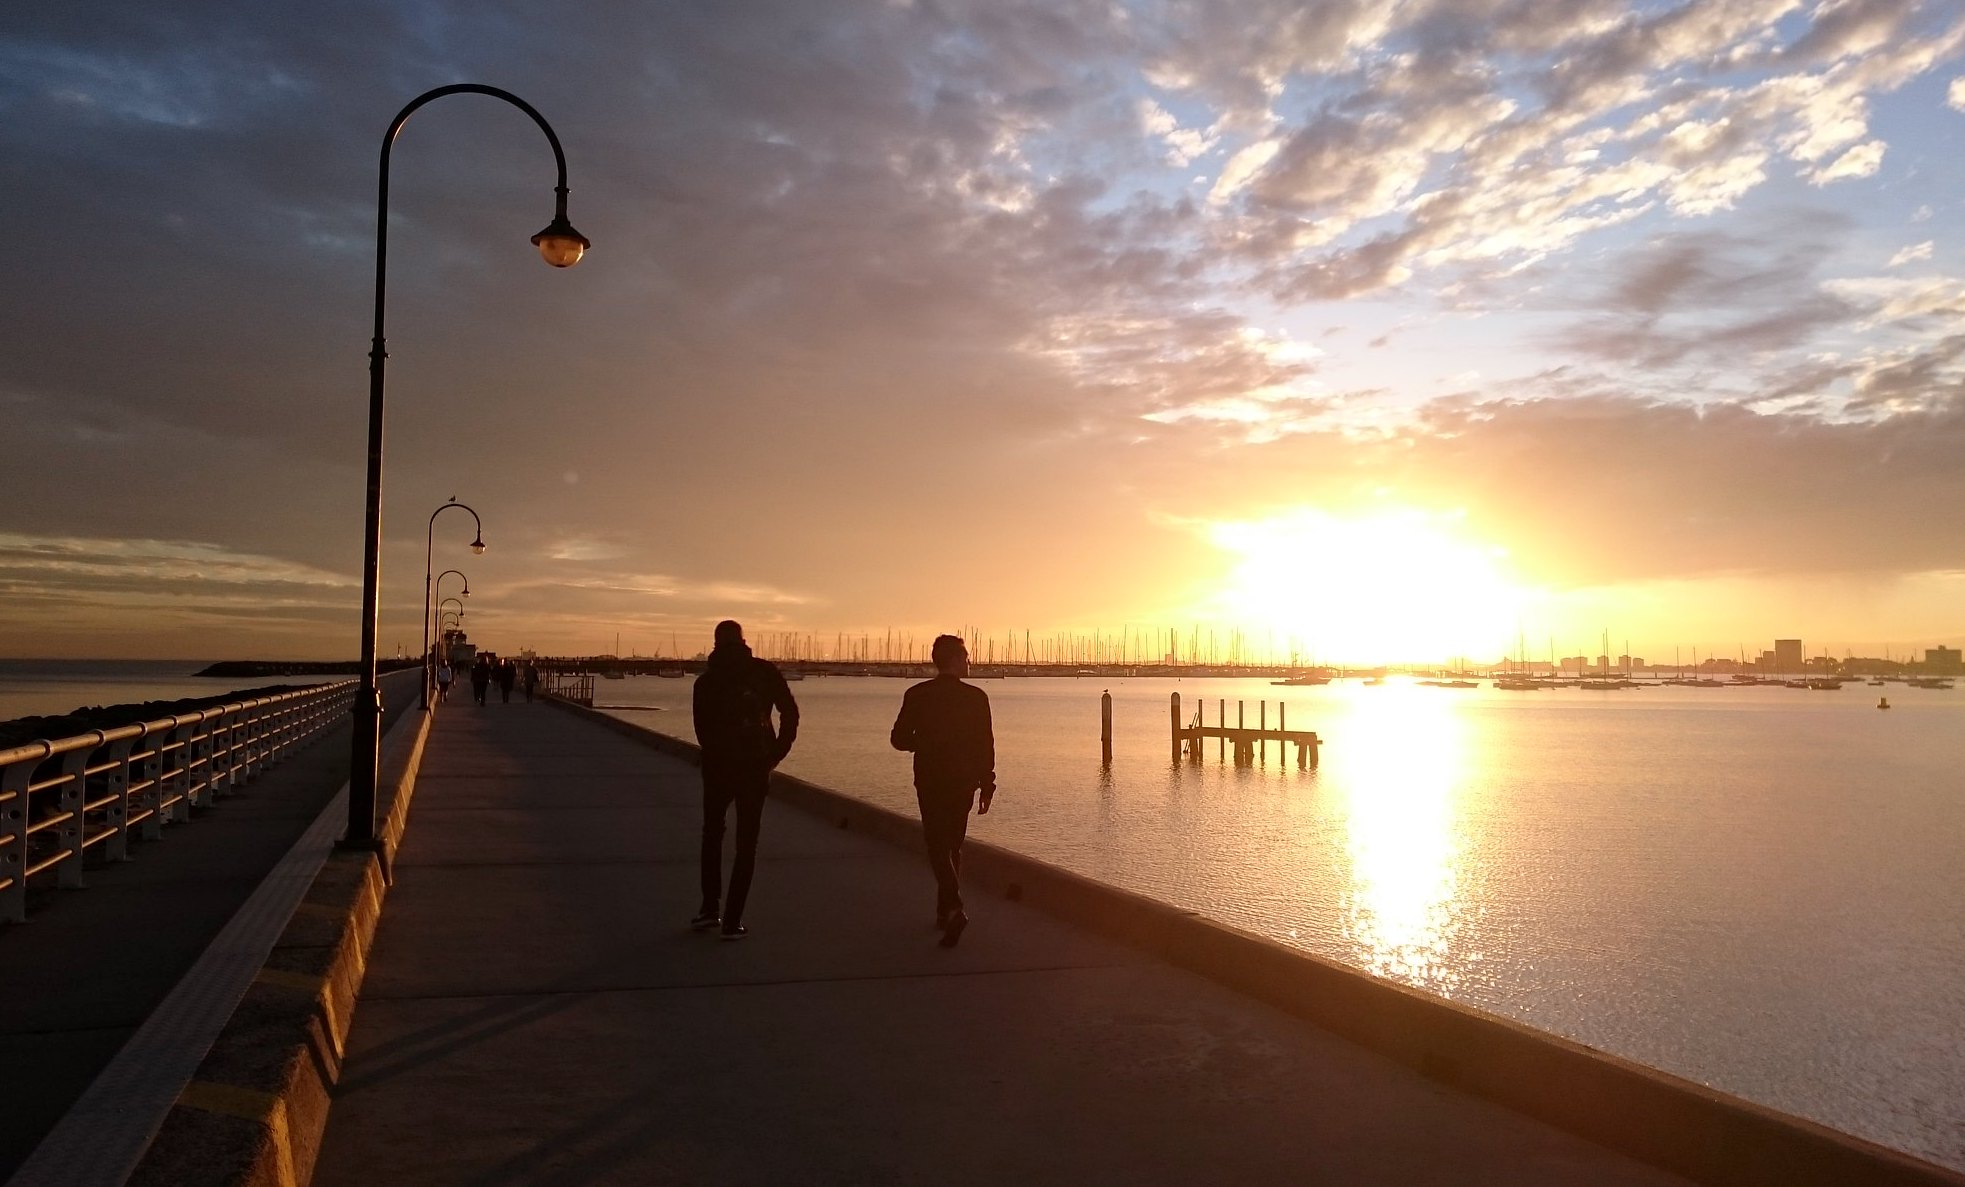 Sunset at St Kilda Breakwater, Image via Flickr by Ash Kyd. CC BY.